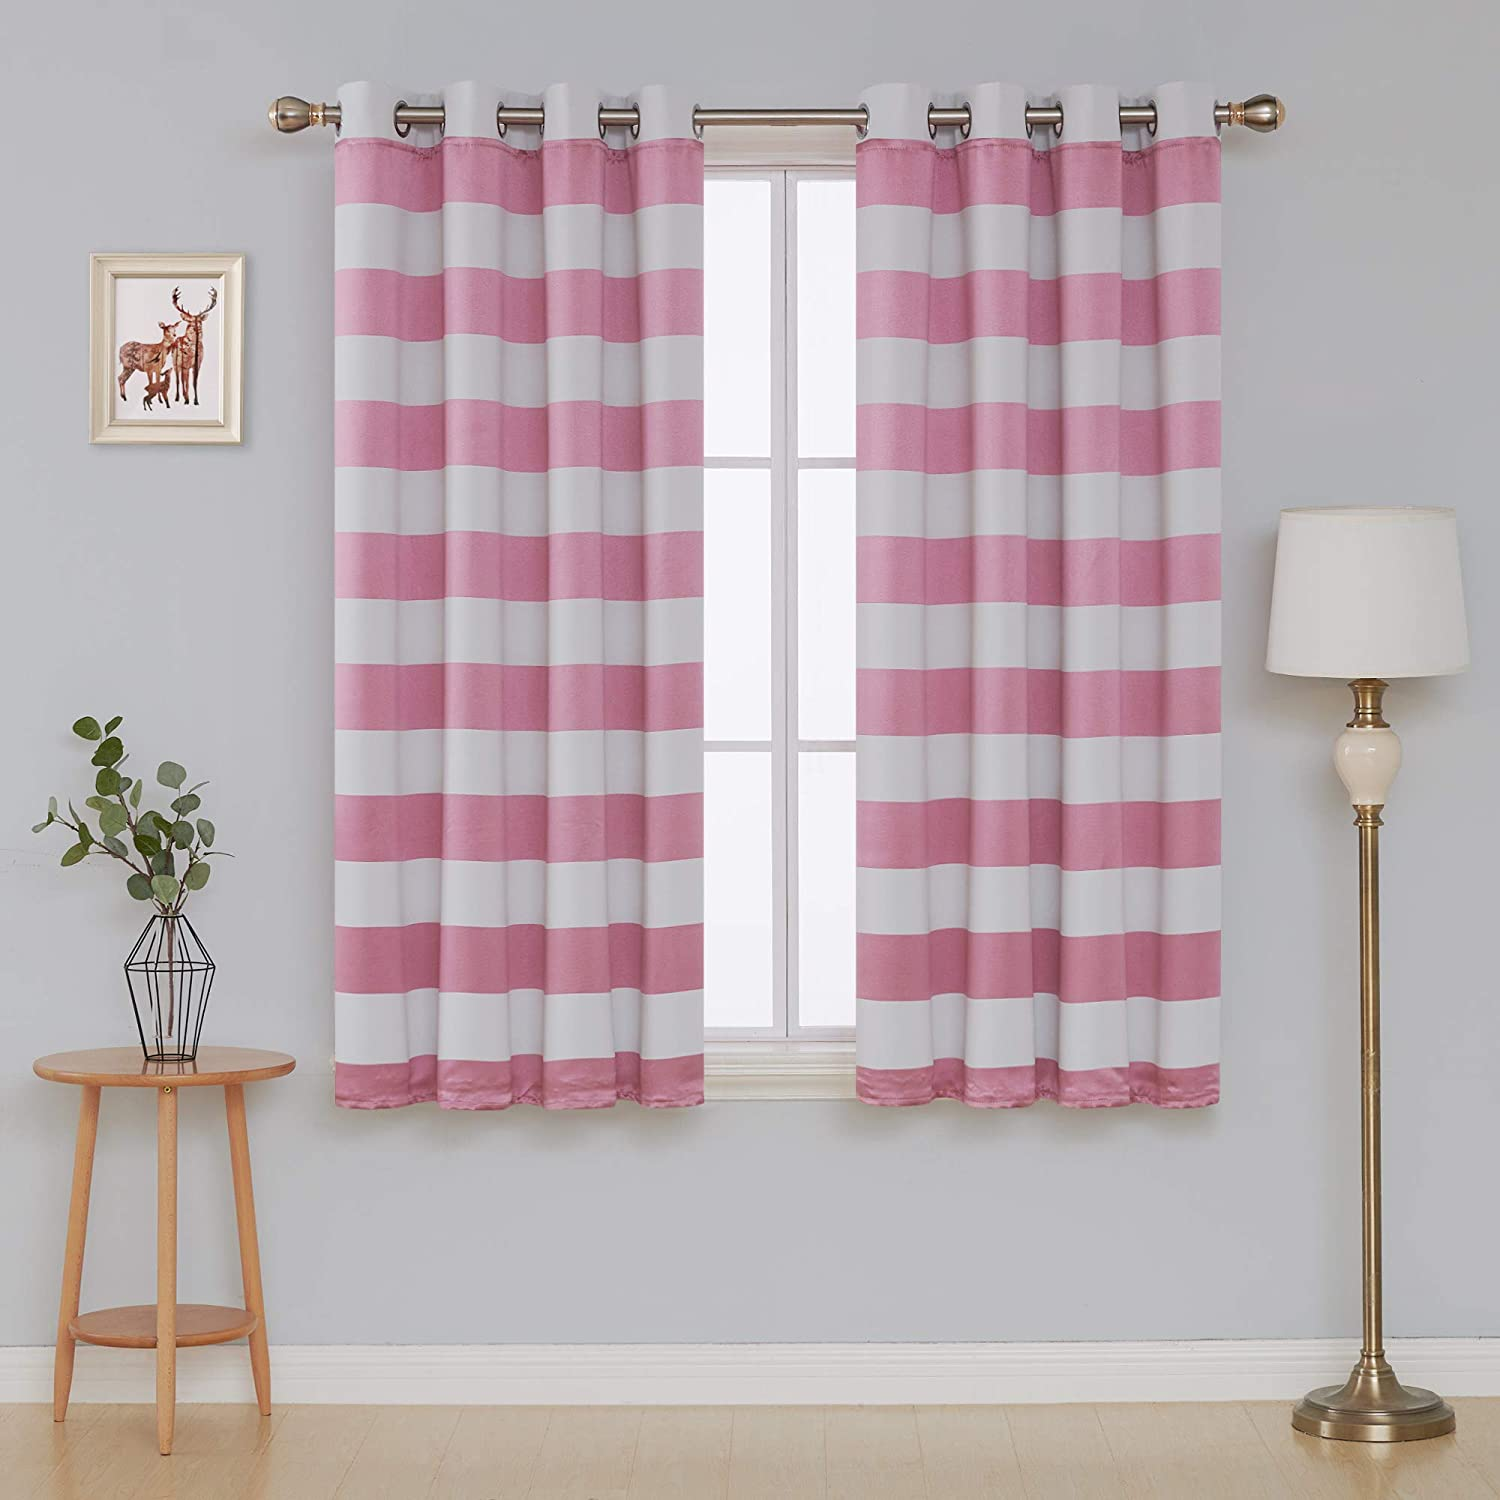 Deconovo Pink Striped Blackout Window Curtains Thermal Insulated Pink and Greyish White Striped Curtains for Bedroom 52W X 45L Baby Pink 2 Panels